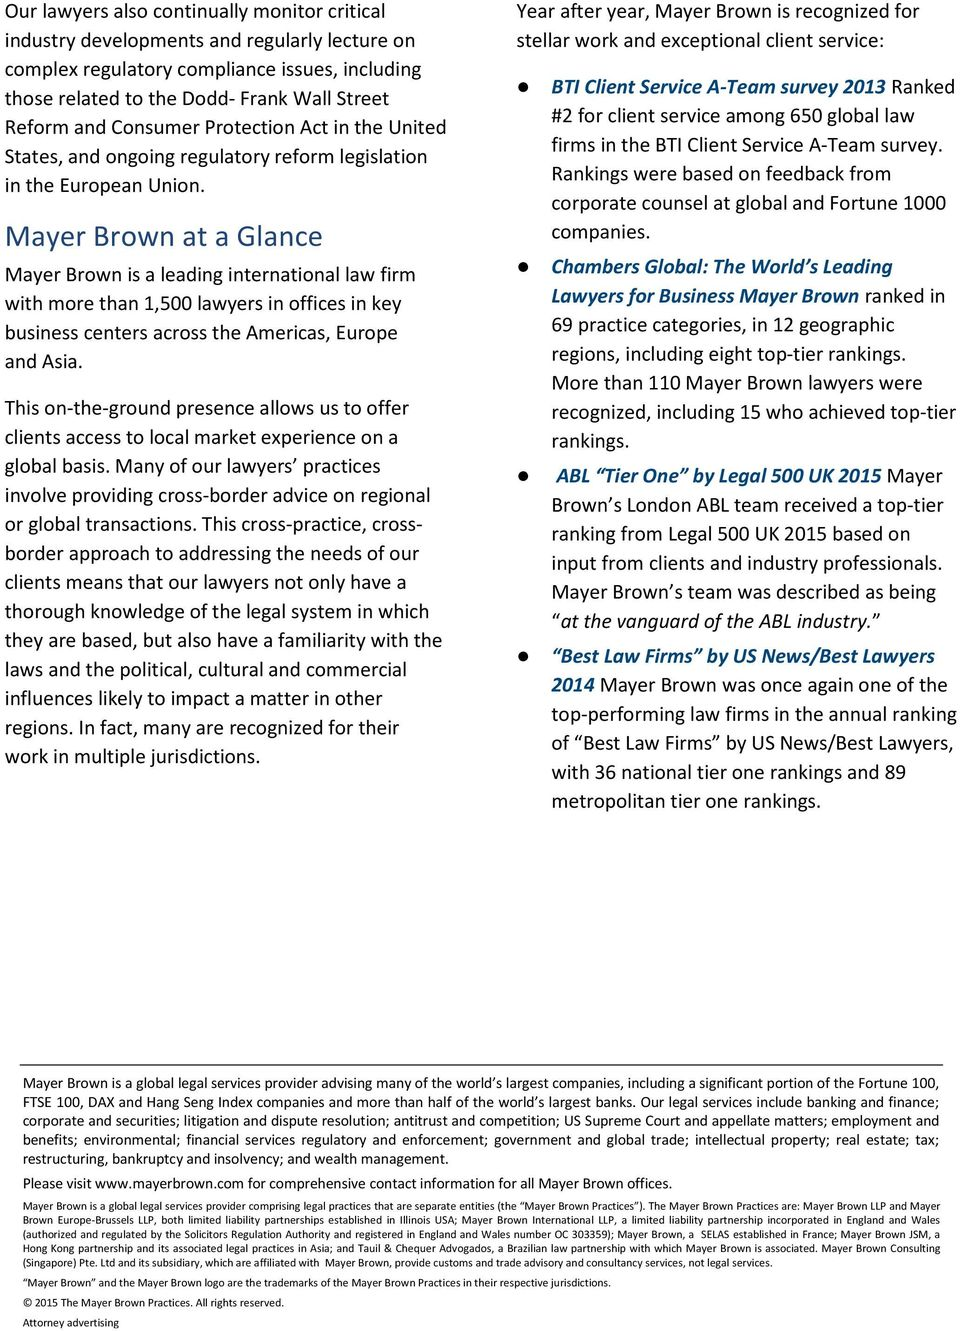 Mayer Brown at a Glance Mayer Brown is a leading international law firm with more than 1,500 lawyers in offices in key business centers across the Americas, Europe and Asia.